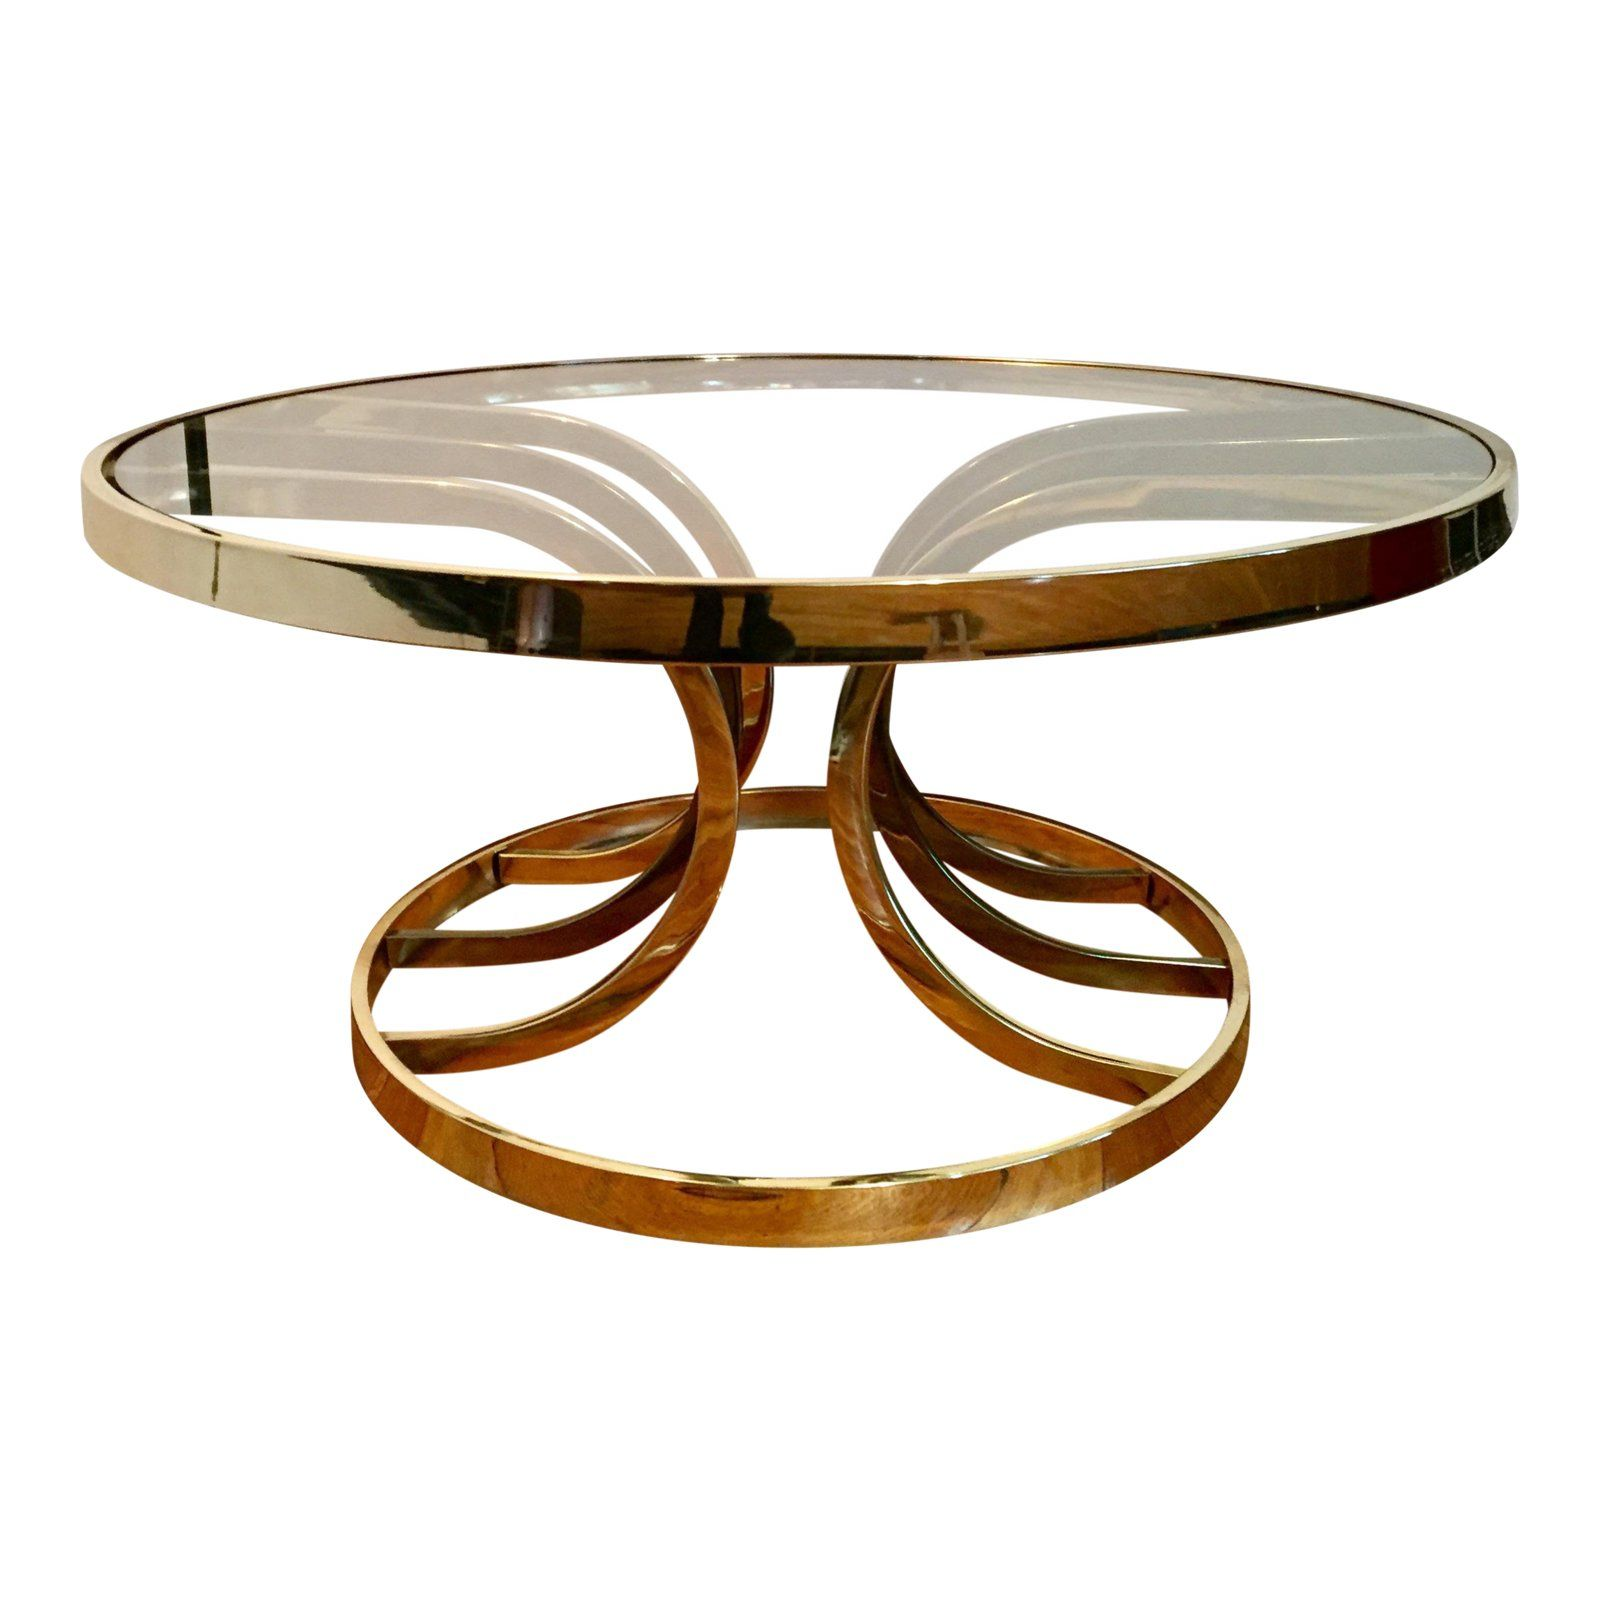 1970s Vintage Glam Coffee Table For Sale Glam Coffee Table Coffee Tables For Sale Coffee Table [ 1600 x 1600 Pixel ]